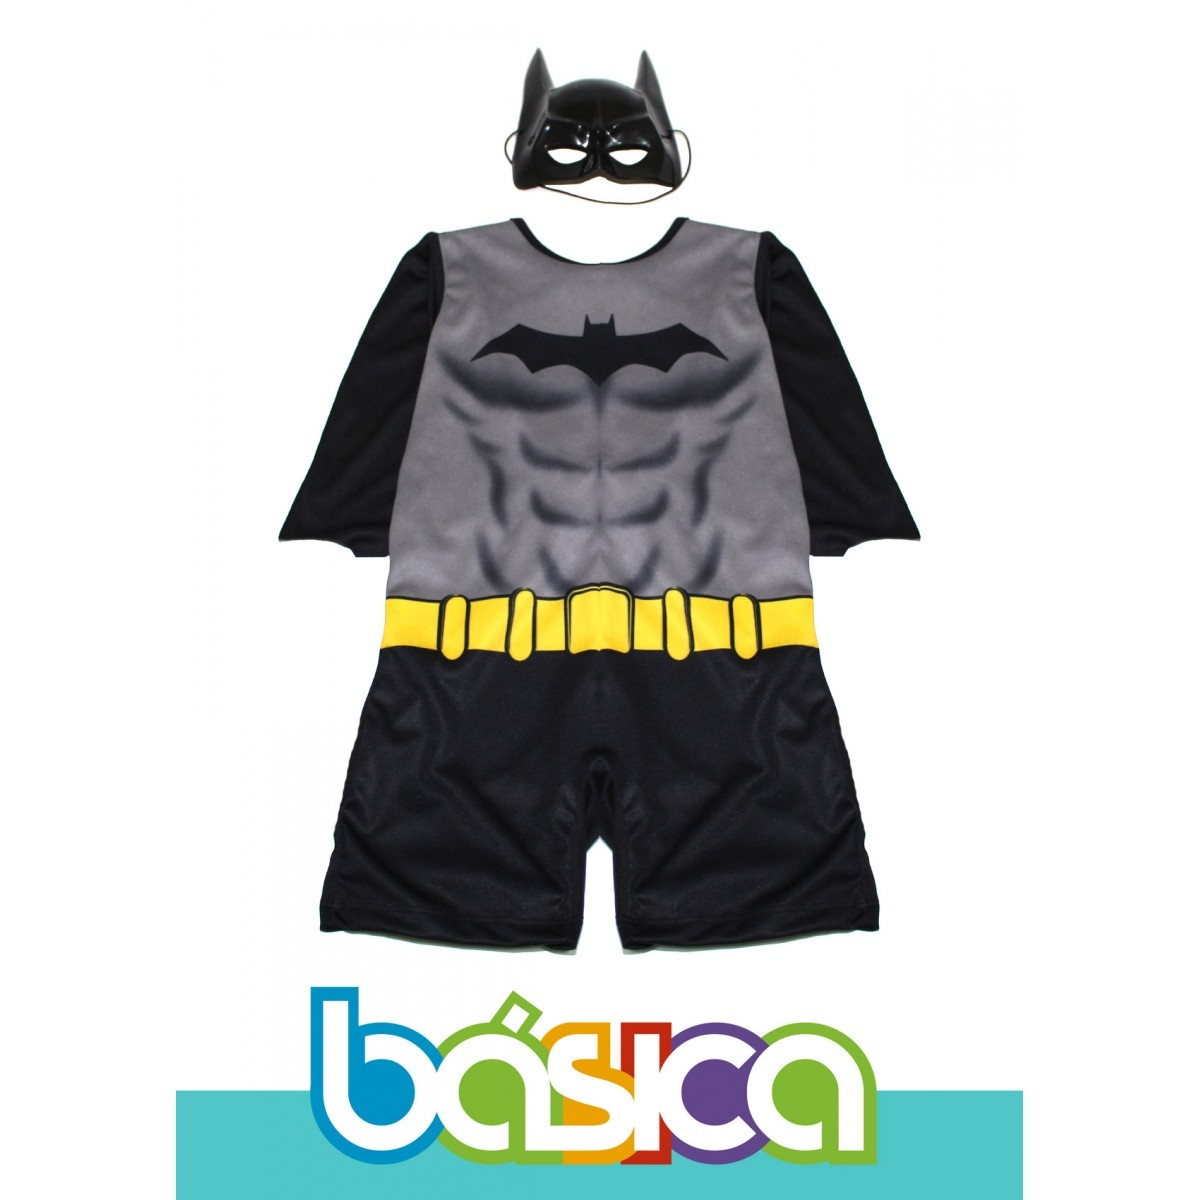 Fantasia do Batman Infantil  - BÁSICA UNIFORMES